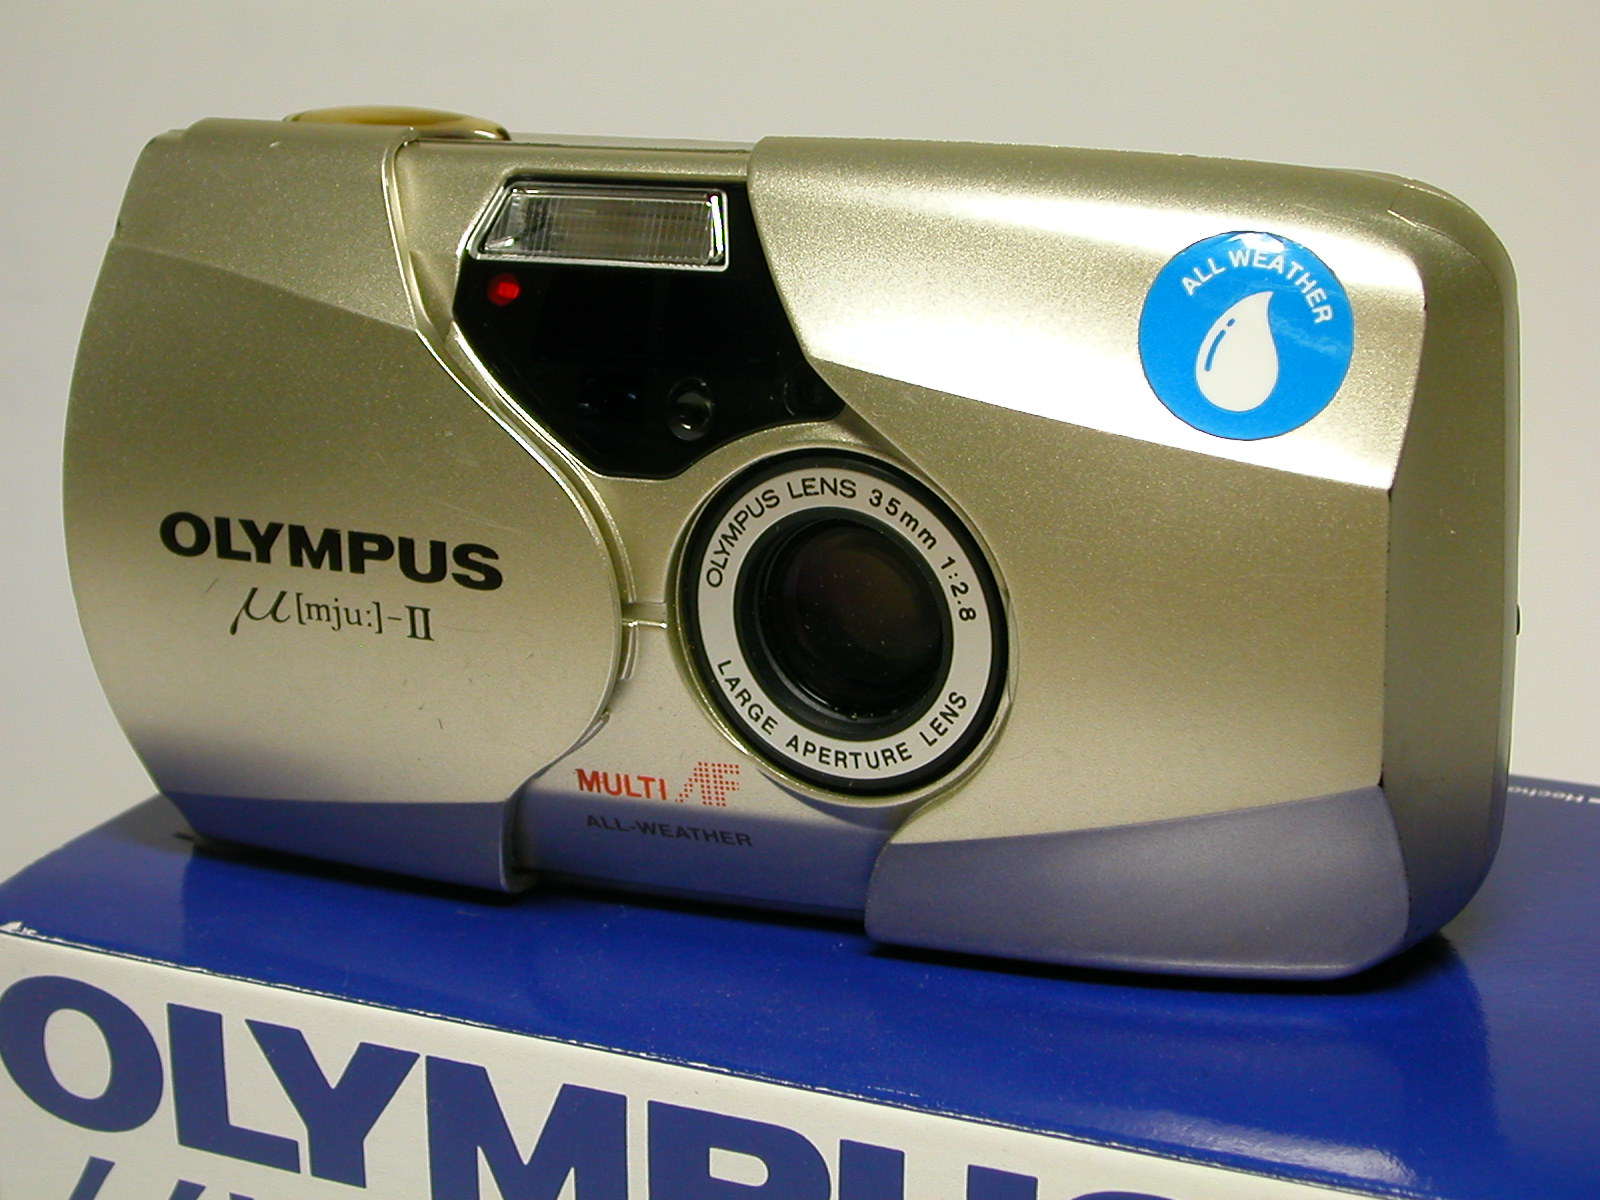 Olympus Mju II - The first camera owned by the photographer Steve Chong.